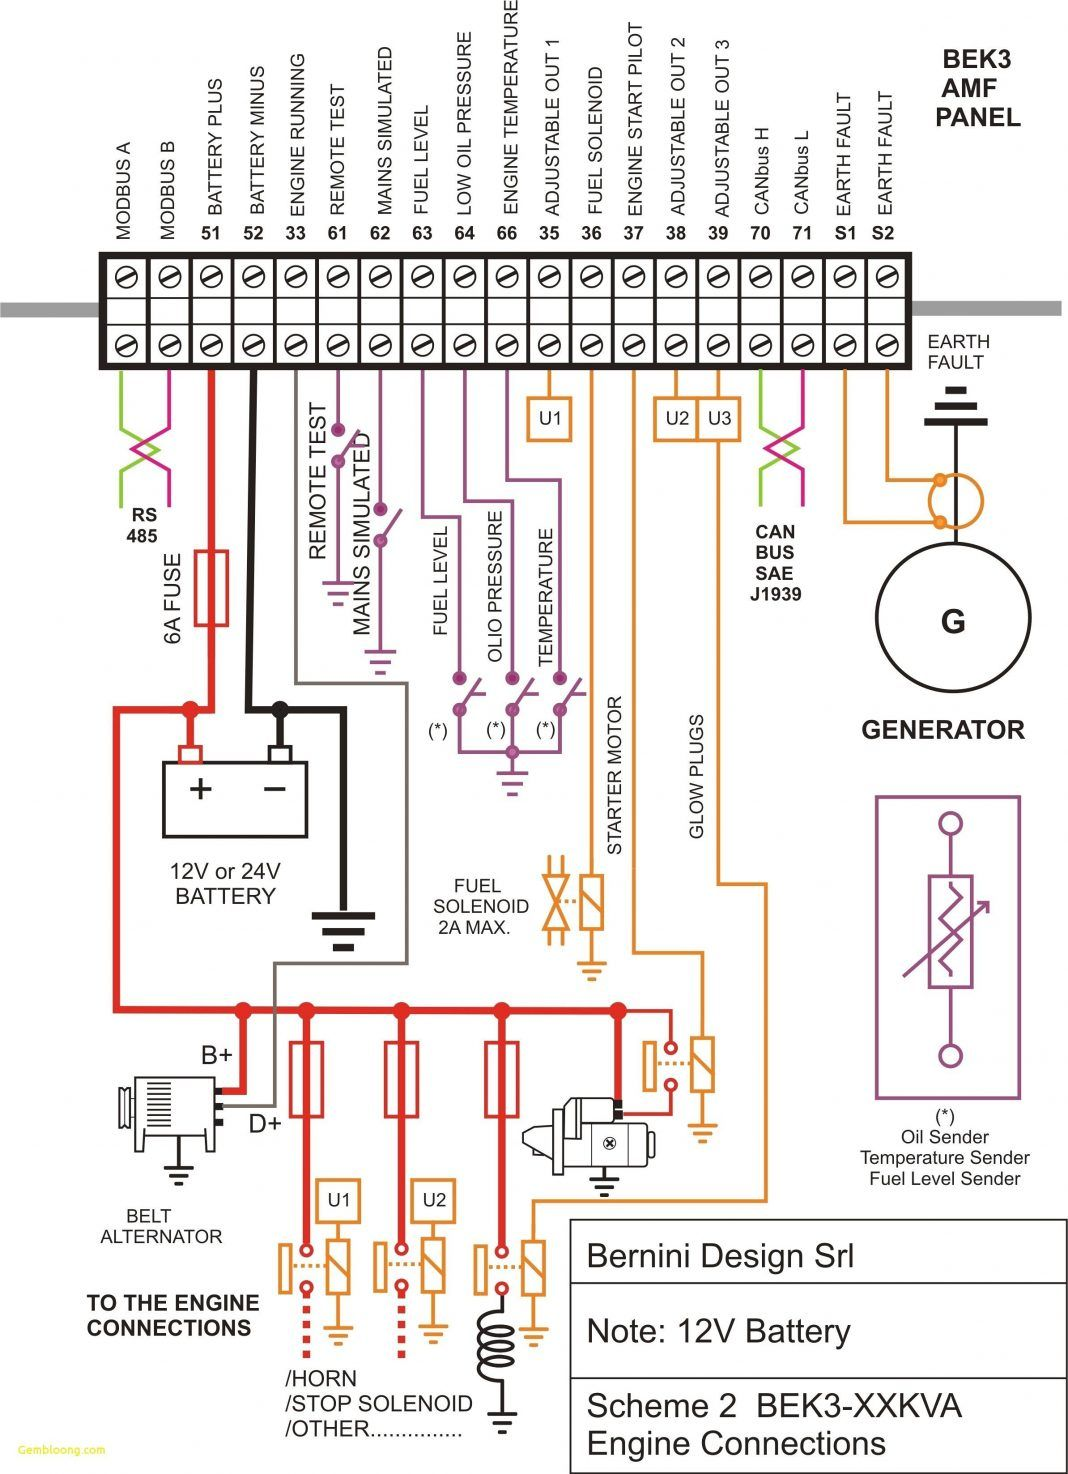 20 Auto Car Wiring Diagram Program Bacamajalah In 2020 Electrical Circuit Diagram Basic Electrical Wiring Electrical Panel Wiring